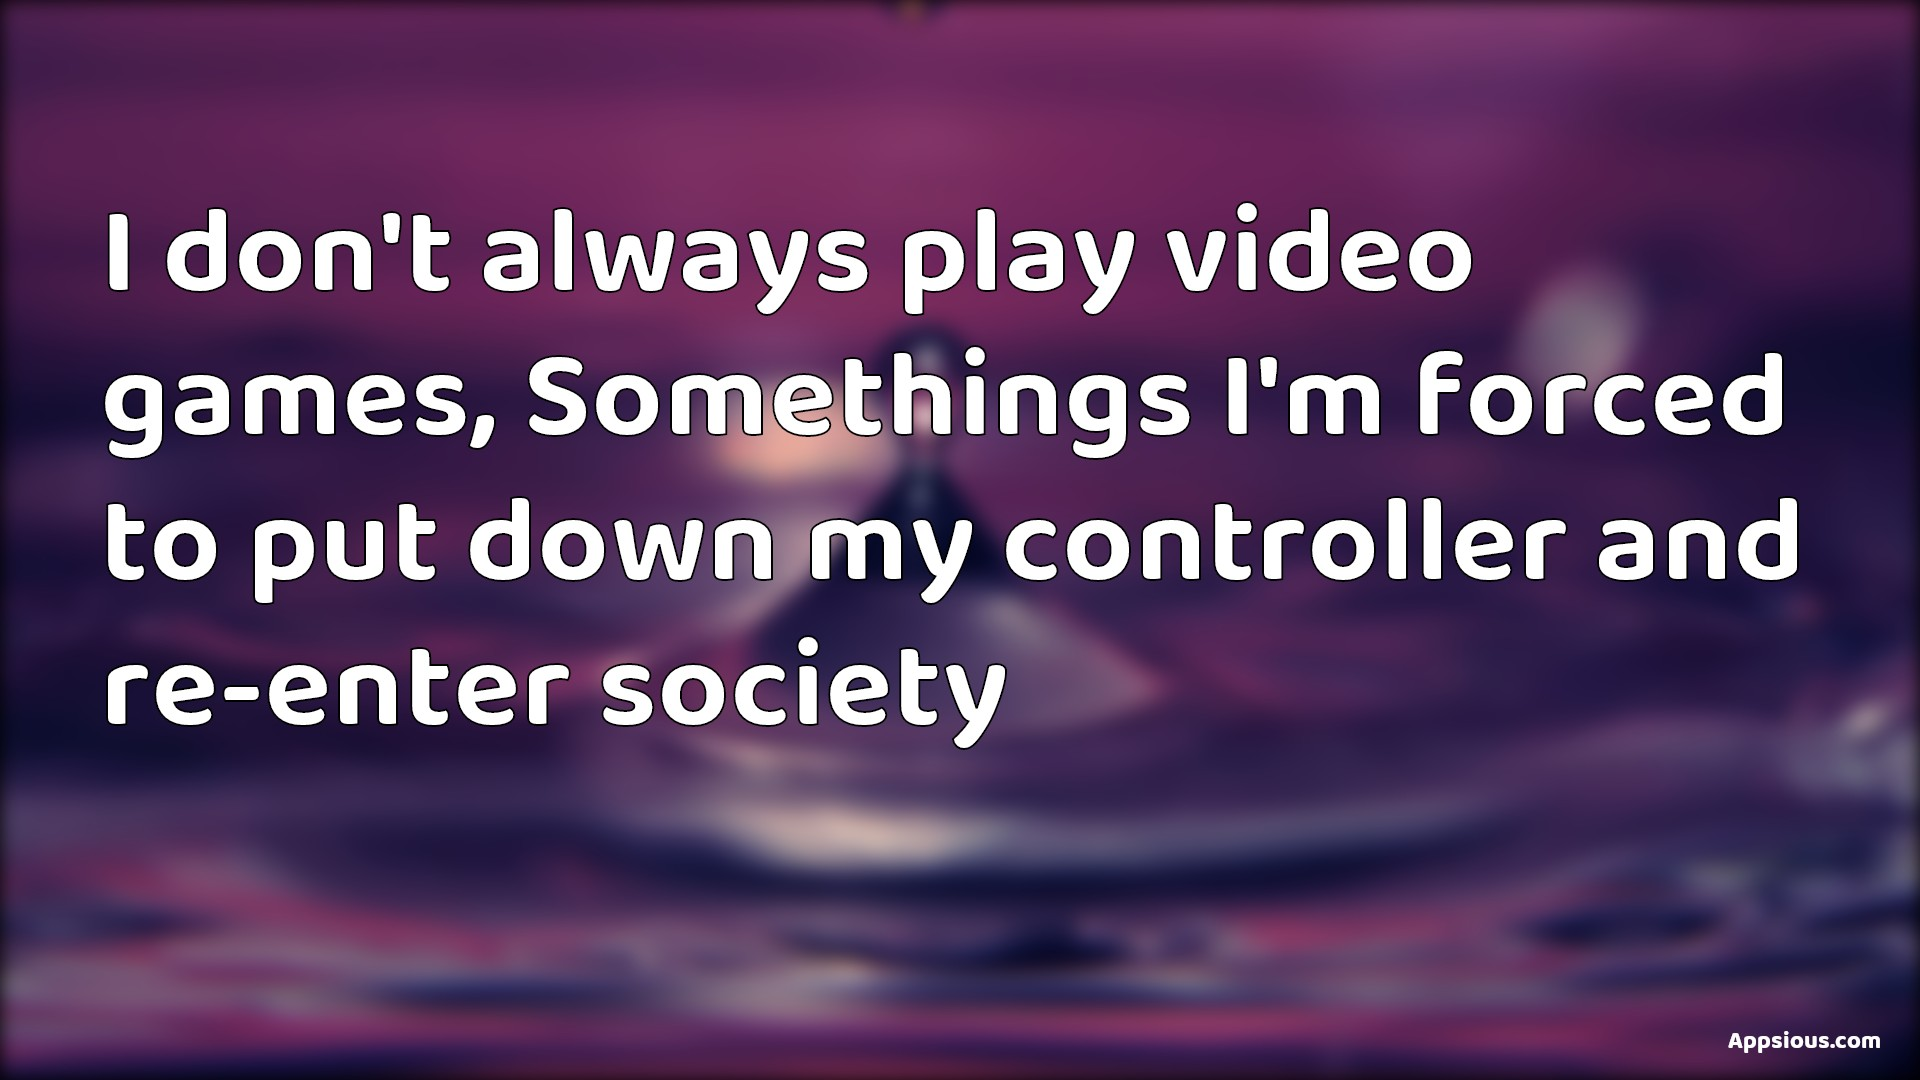 I don't always play video games, Somethings I'm forced to put down my controller and re-enter society